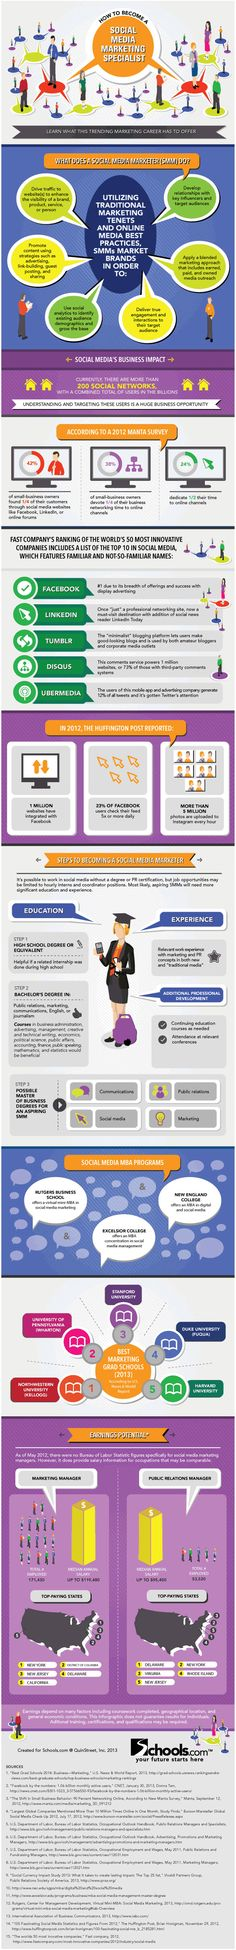 How to Become a Social Media Marketing Expert – Infographic